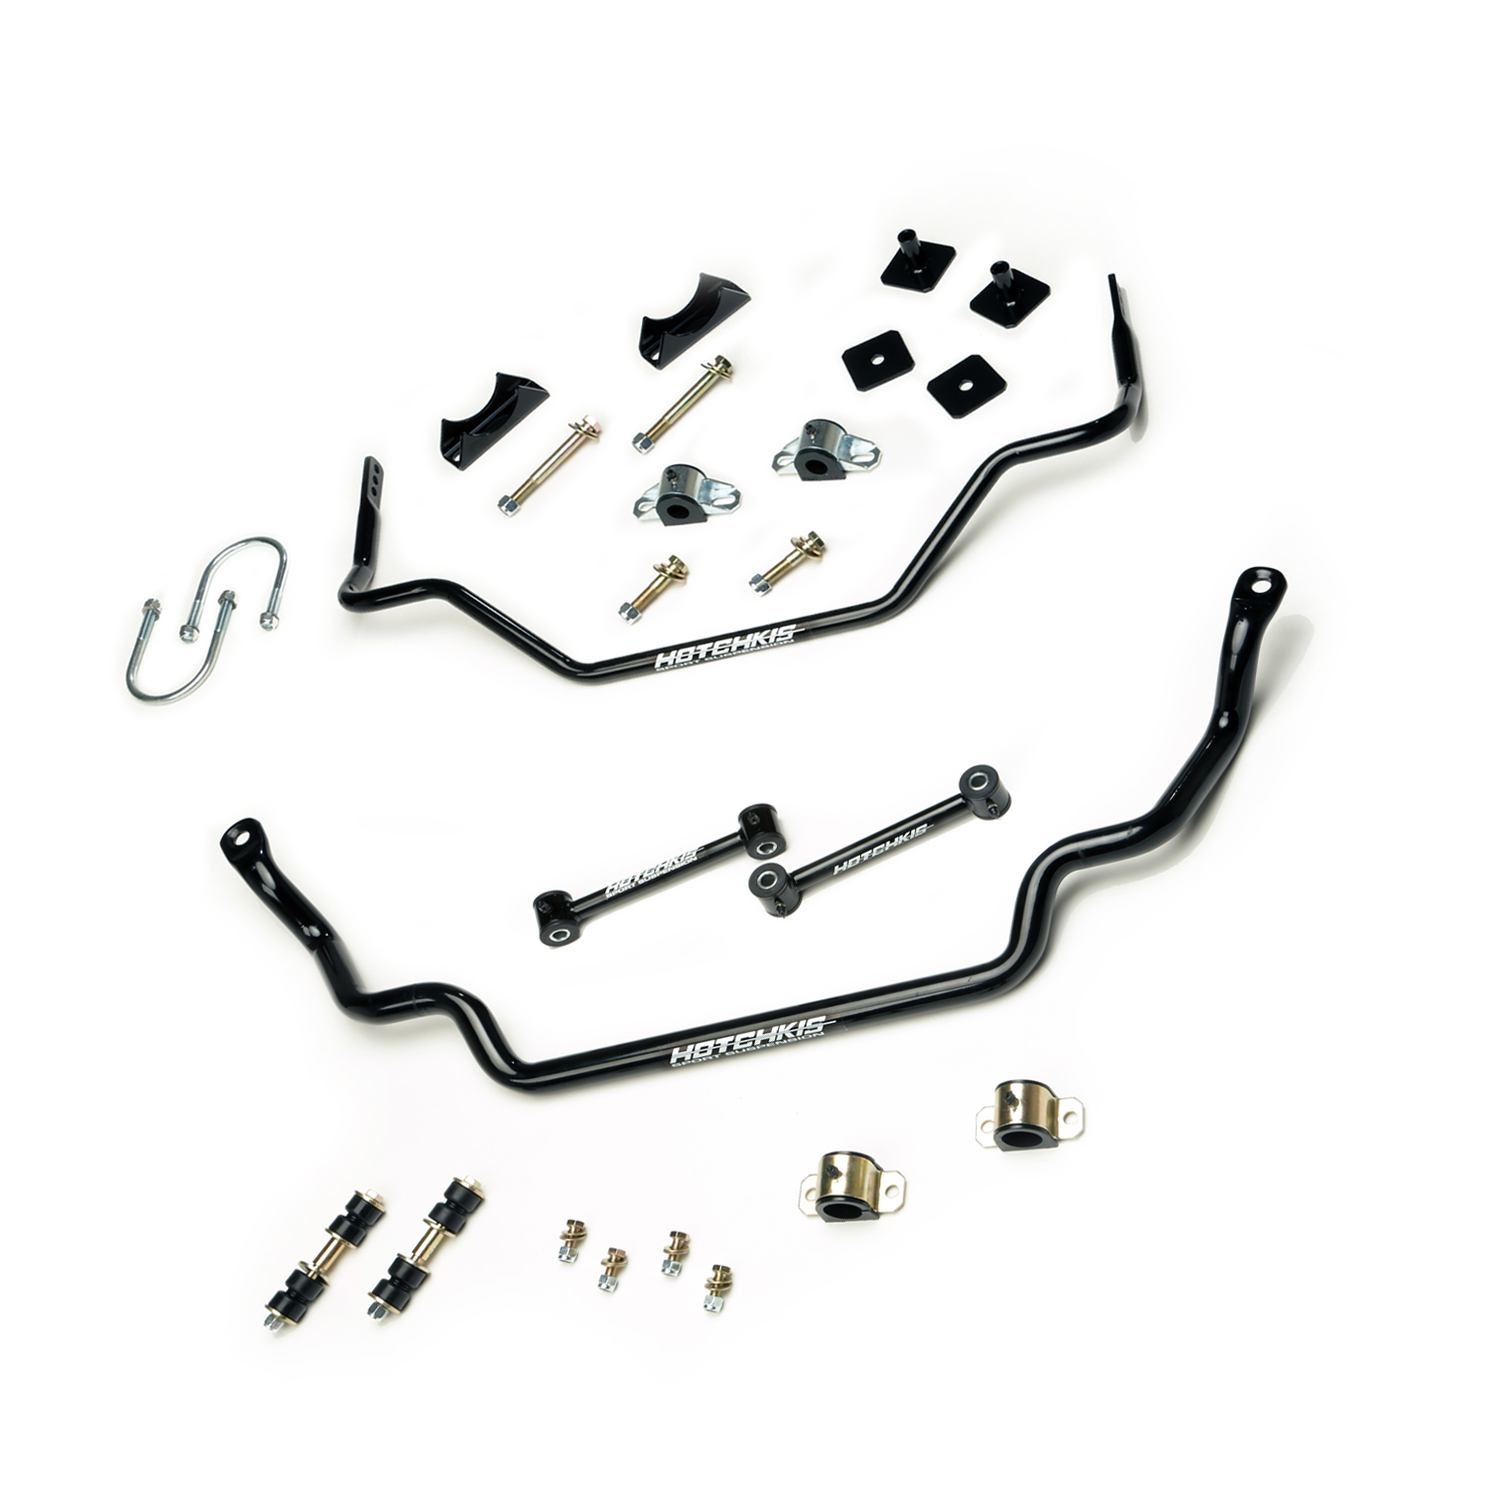 1964 1/2 – 1966 Mustang Sway Bar Set from Hotchkis Sport Suspension